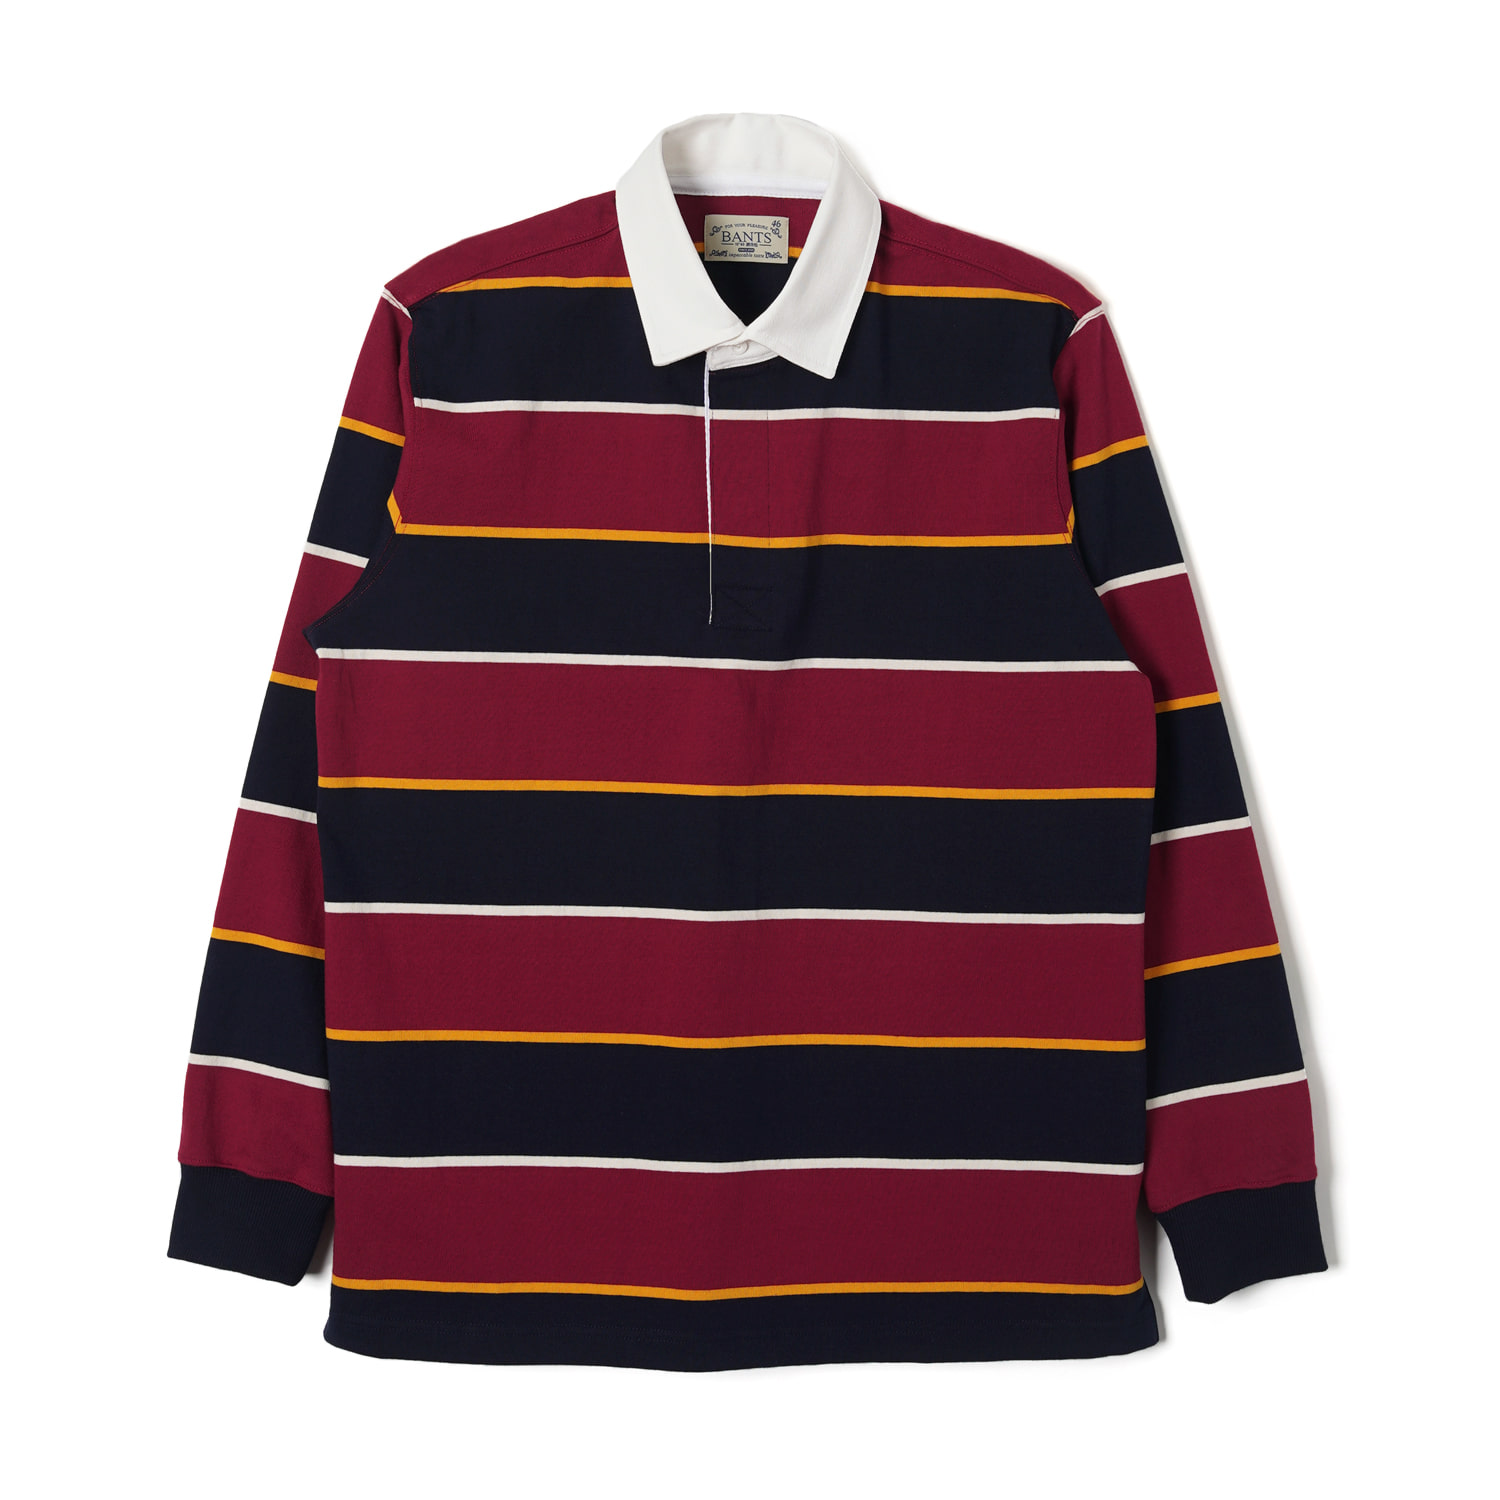 WSK Stripe Cotton Rugby T-shirt - Burgundy x NavyBANTS반츠